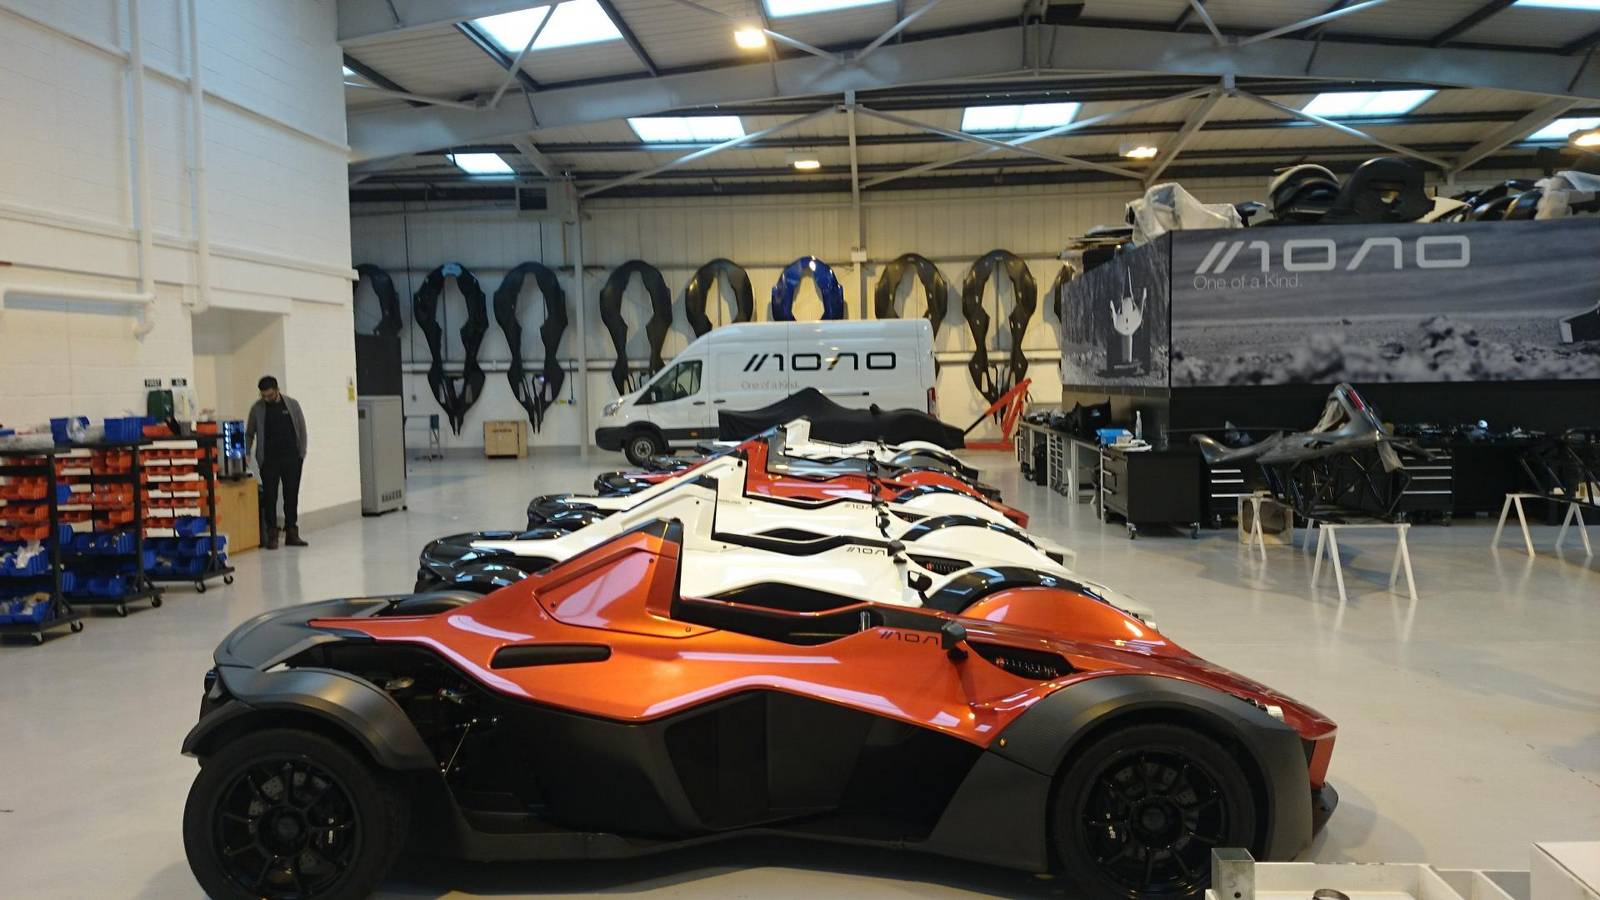 Bac Mono For Sale >> 2016 BAC Mono Gets New Chassis and More Interior Space - GTspirit